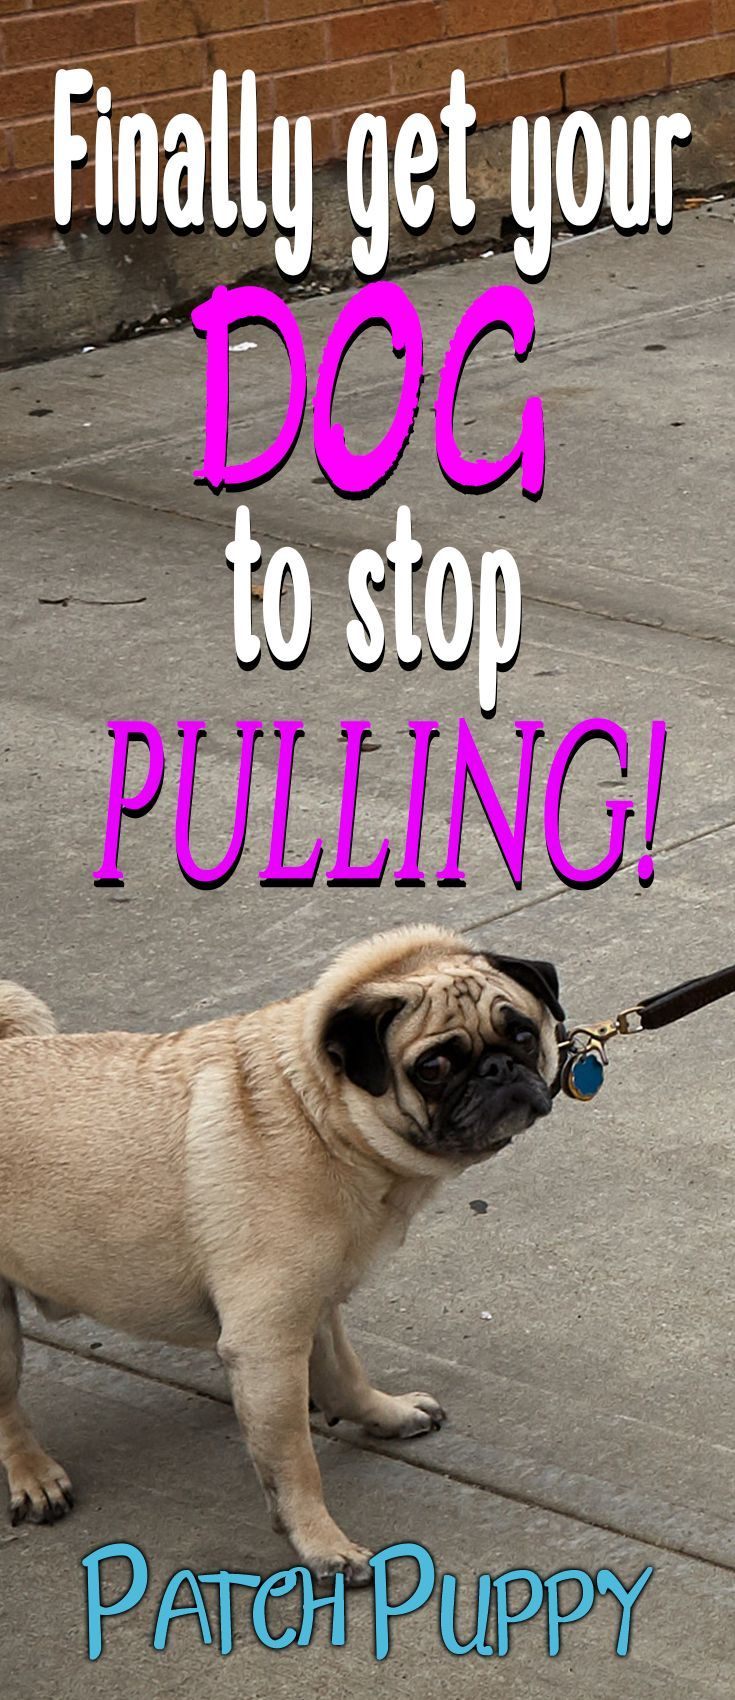 Finally Get Your Dog To Stop Pulling How To Stop Leash Pulling